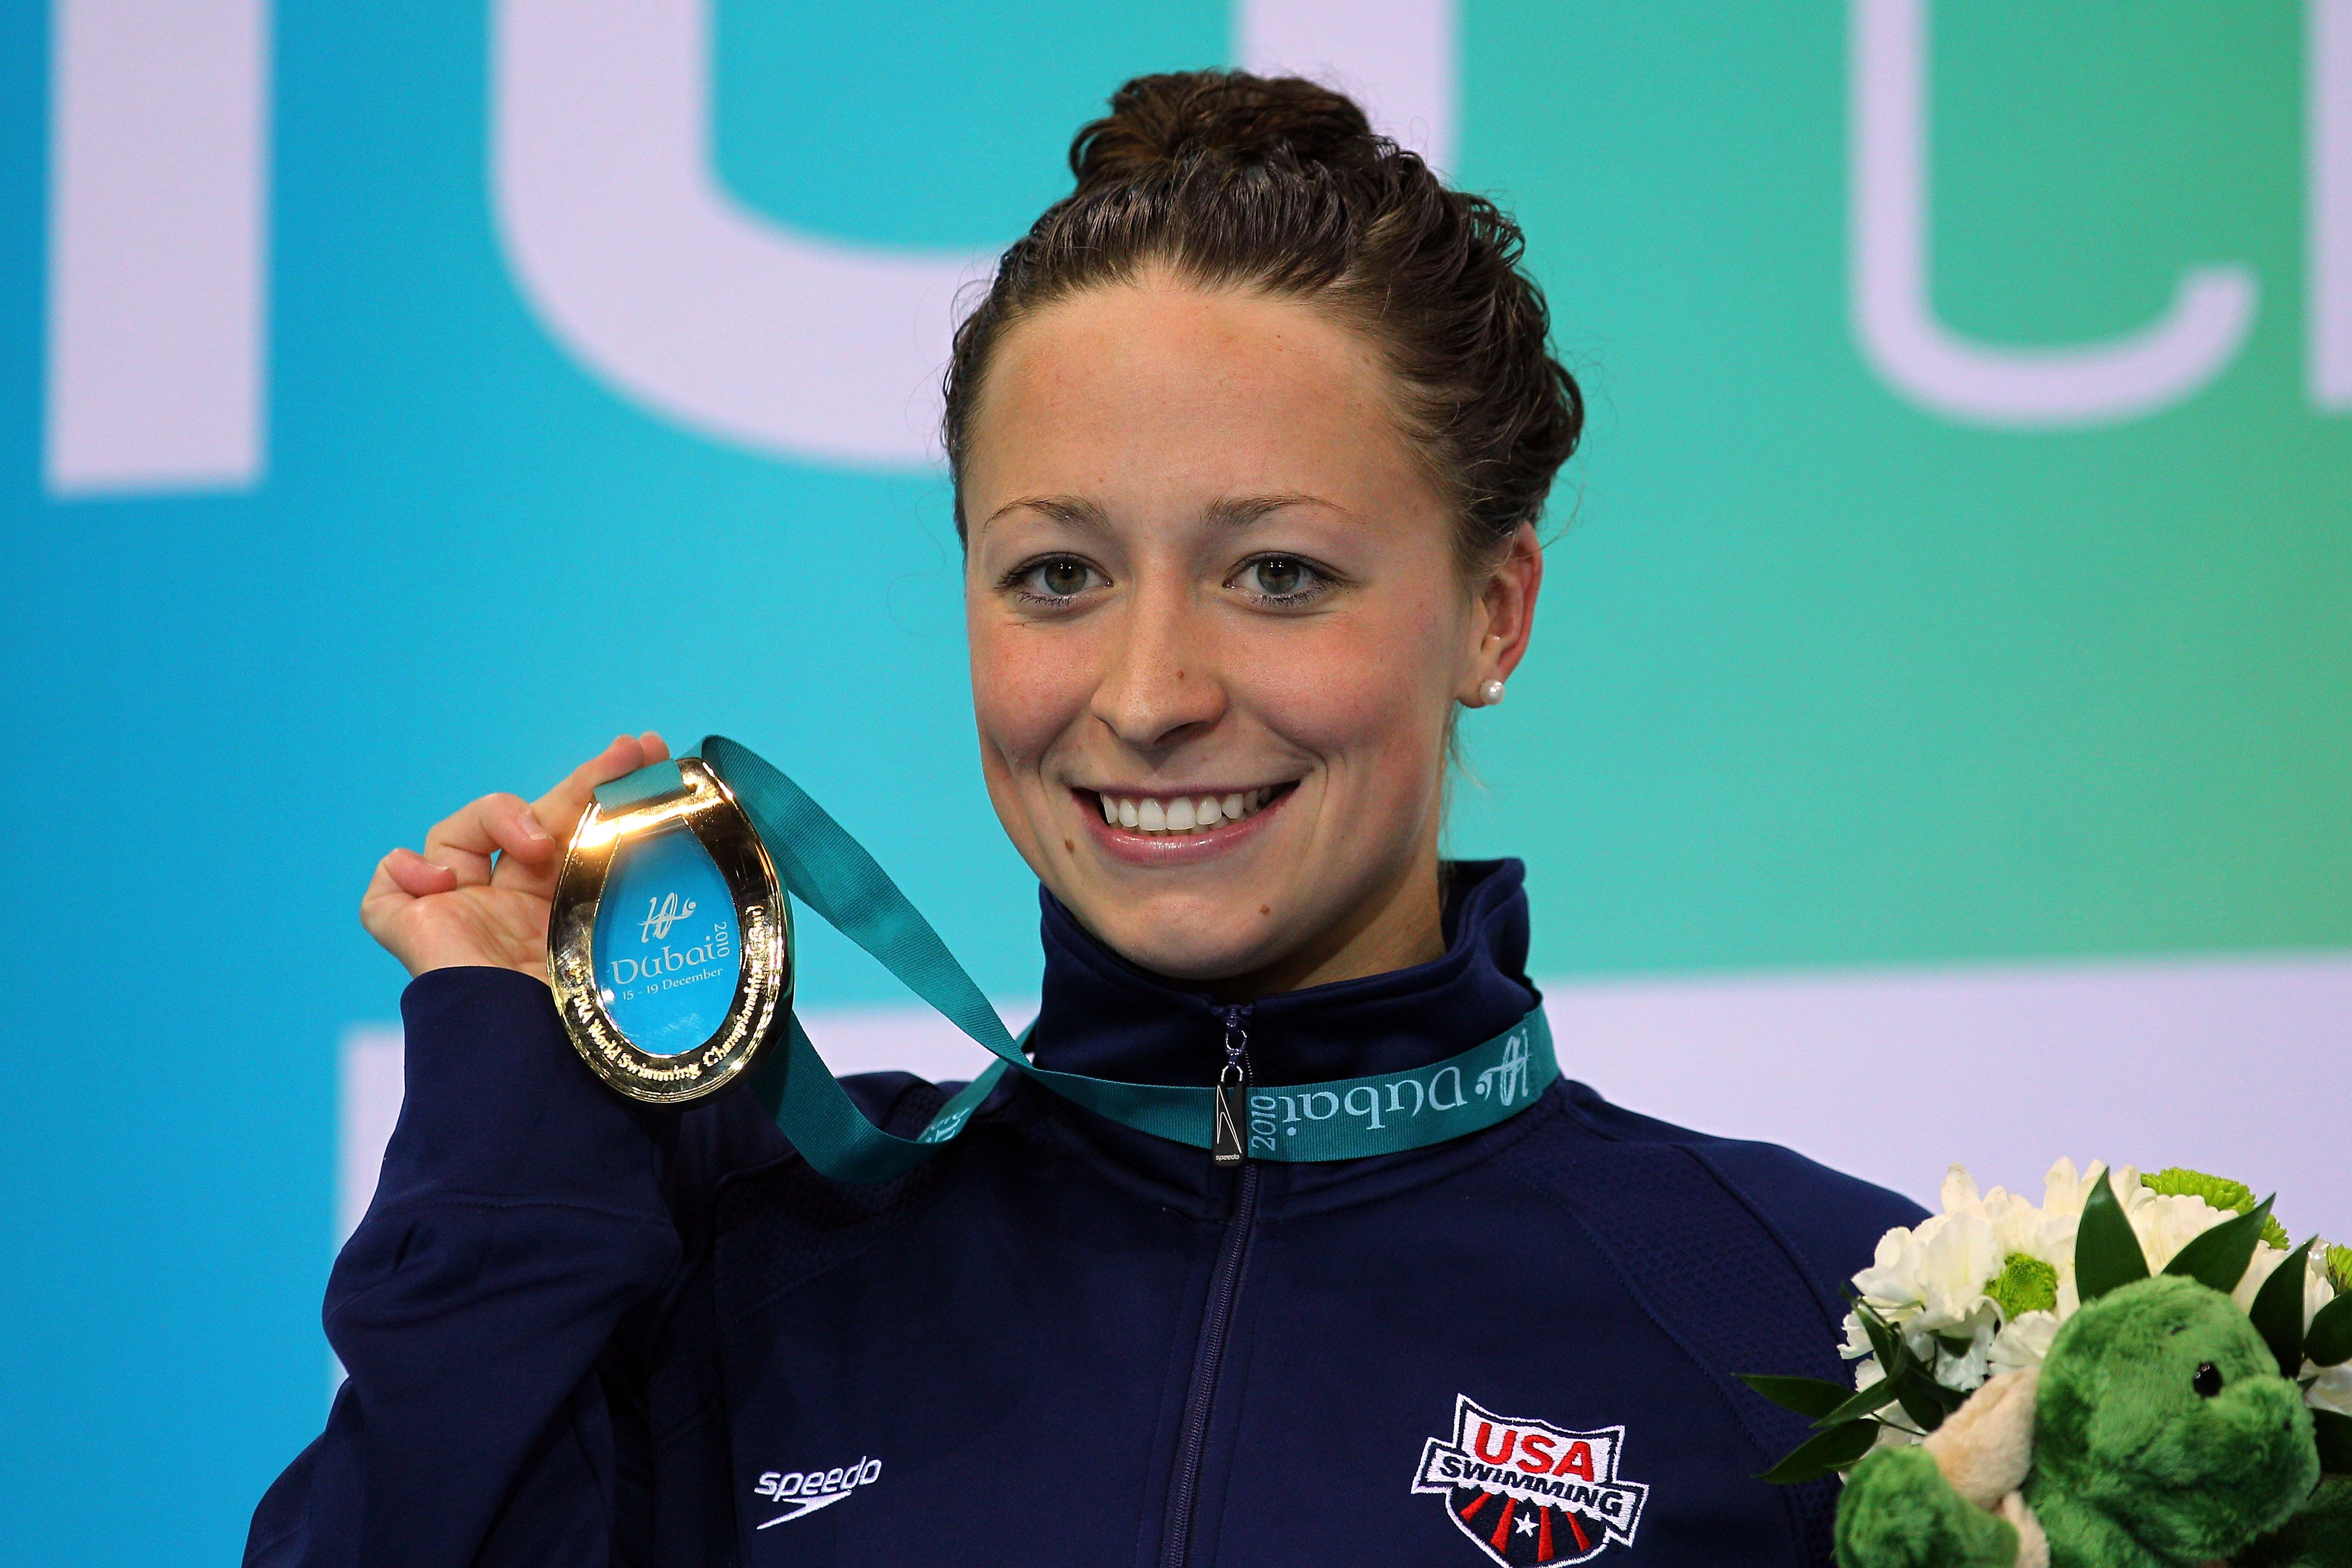 DUBAI, UNITED ARAB EMIRATES - DECEMBER 17: Ariana Kukors of USA poses with her Gold medal after winning the Women's 100m Individual Medley final on day three of the 10th FINA World Swimming Championships (25m) at the Hamdan bin Mohammed bin Rashid Sports Complex on December 17, 2010 in Dubai, United Arab Emirates.  (Photo by Clive Rose/Getty Images)